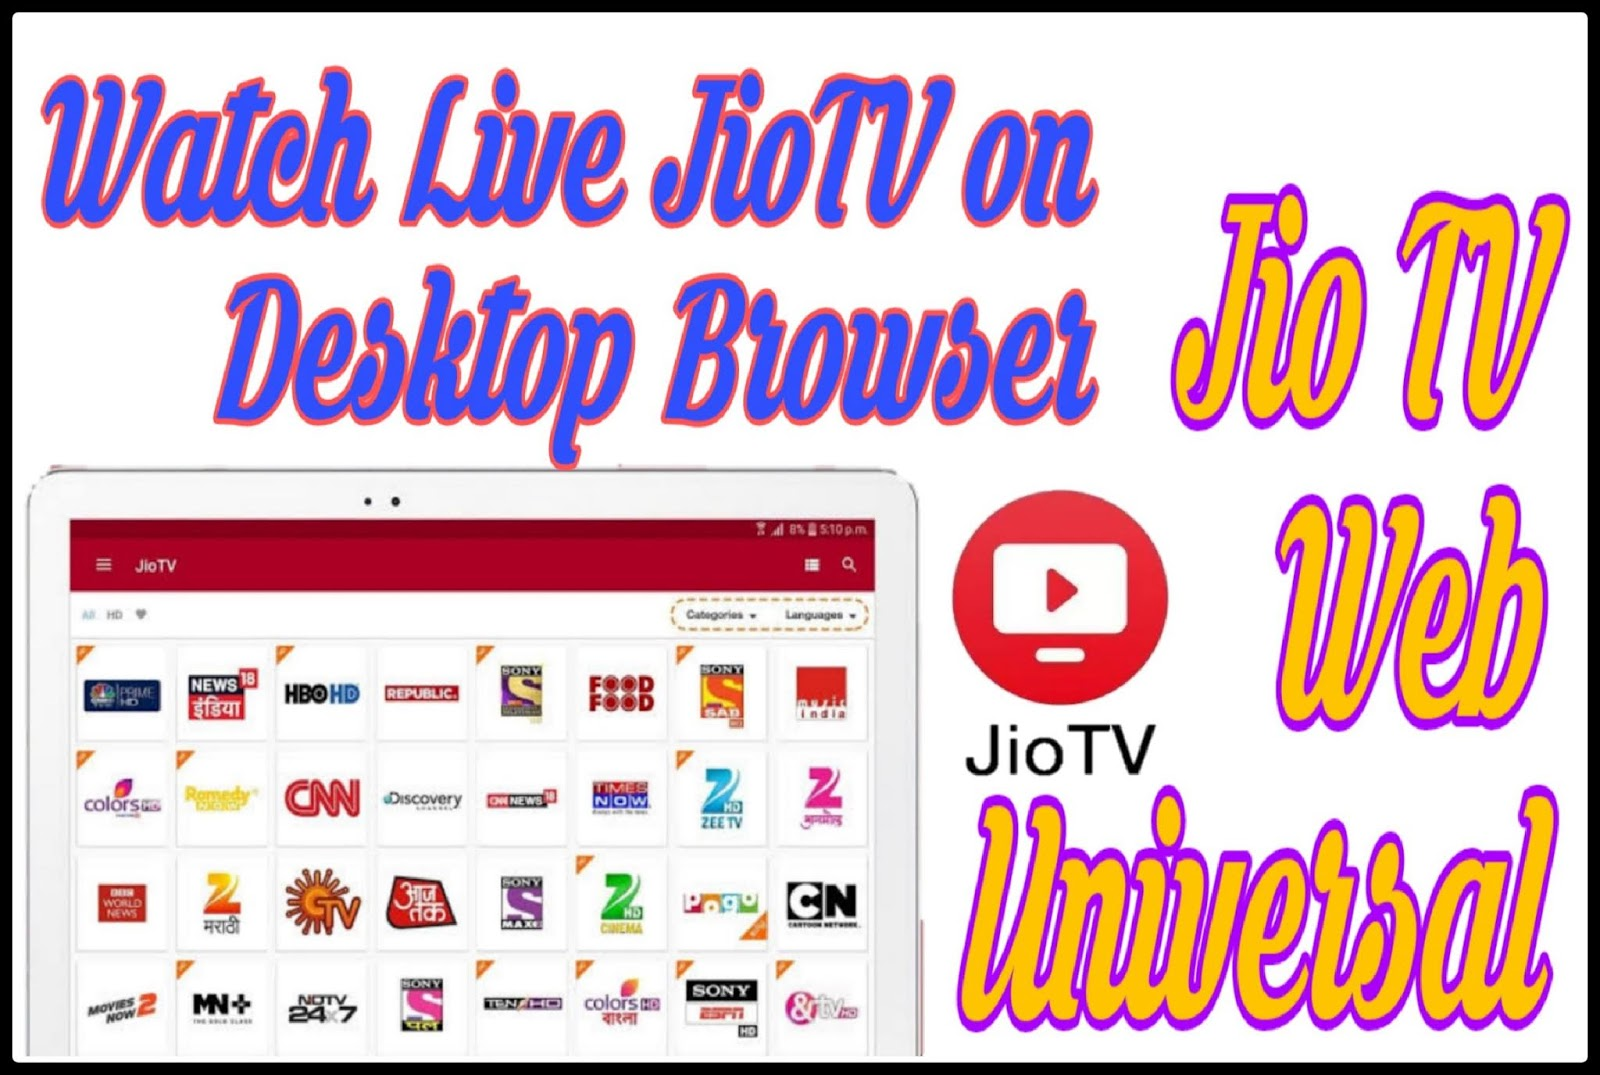 Jio TV Web Universal | How to Watch Live Jio TV on Desktop Browser